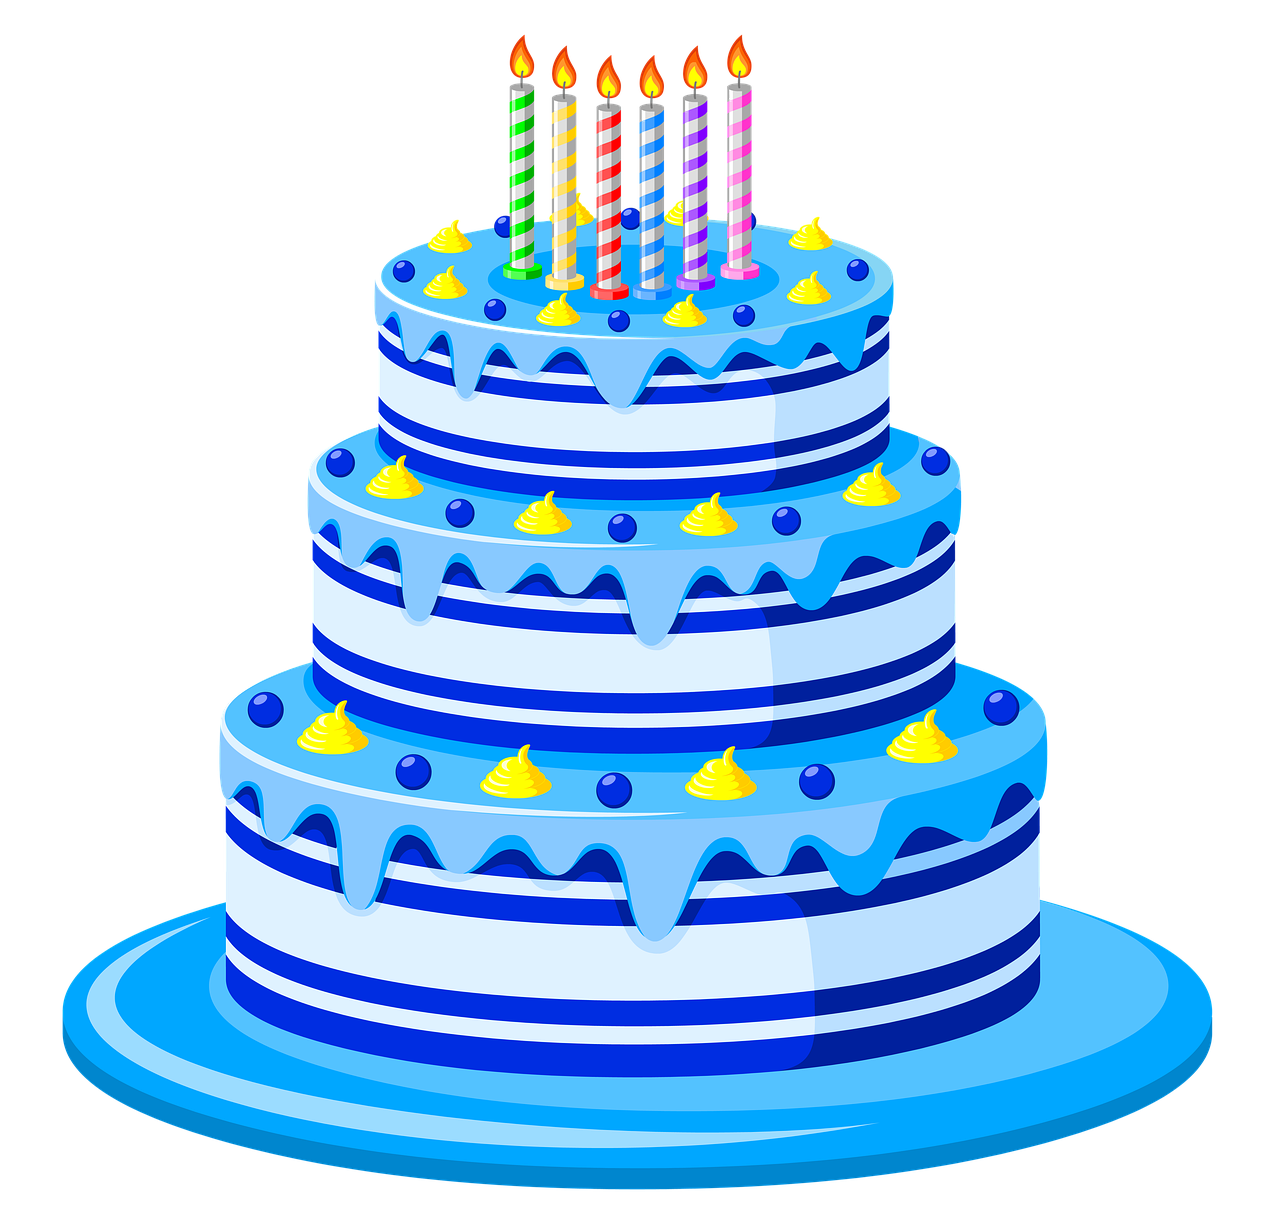 3 tier blue birthday cake with candles on top.